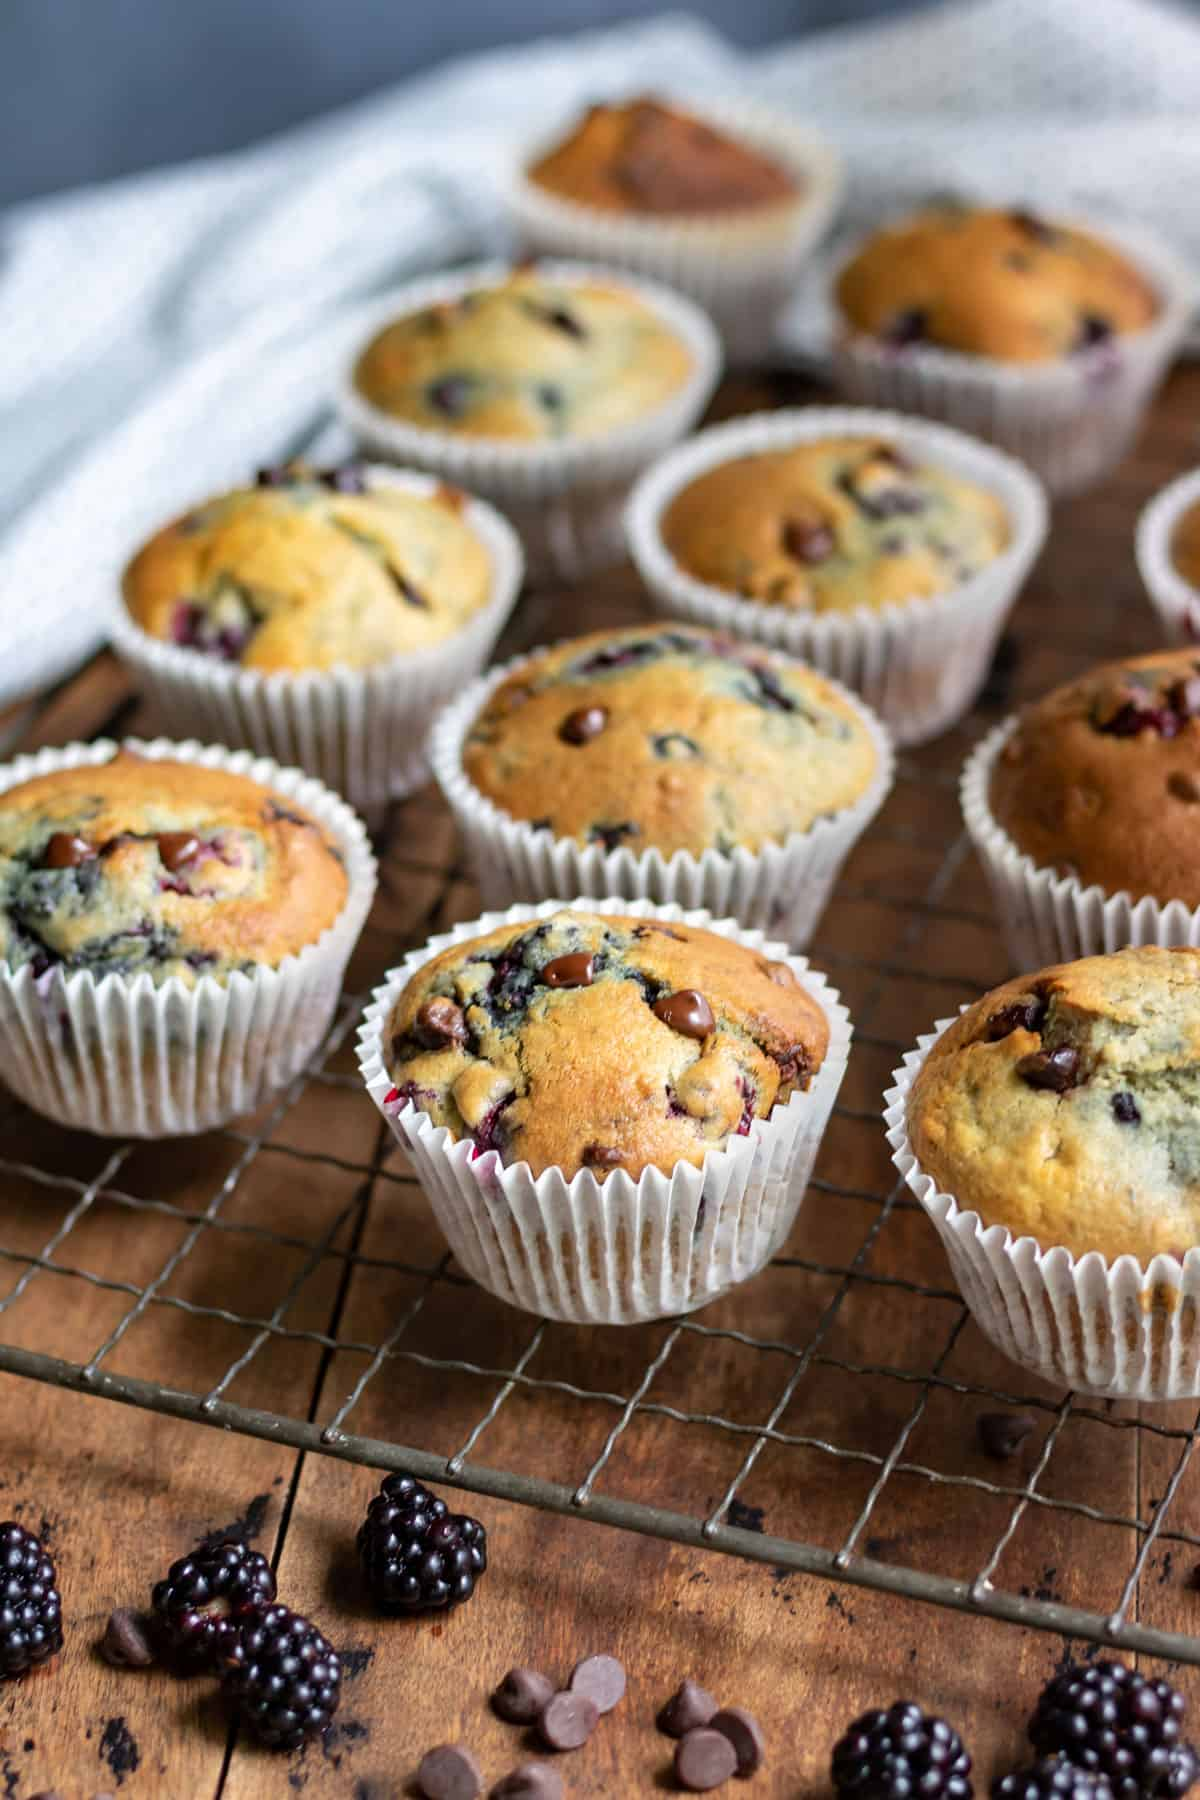 Muffins cooling on a rack.